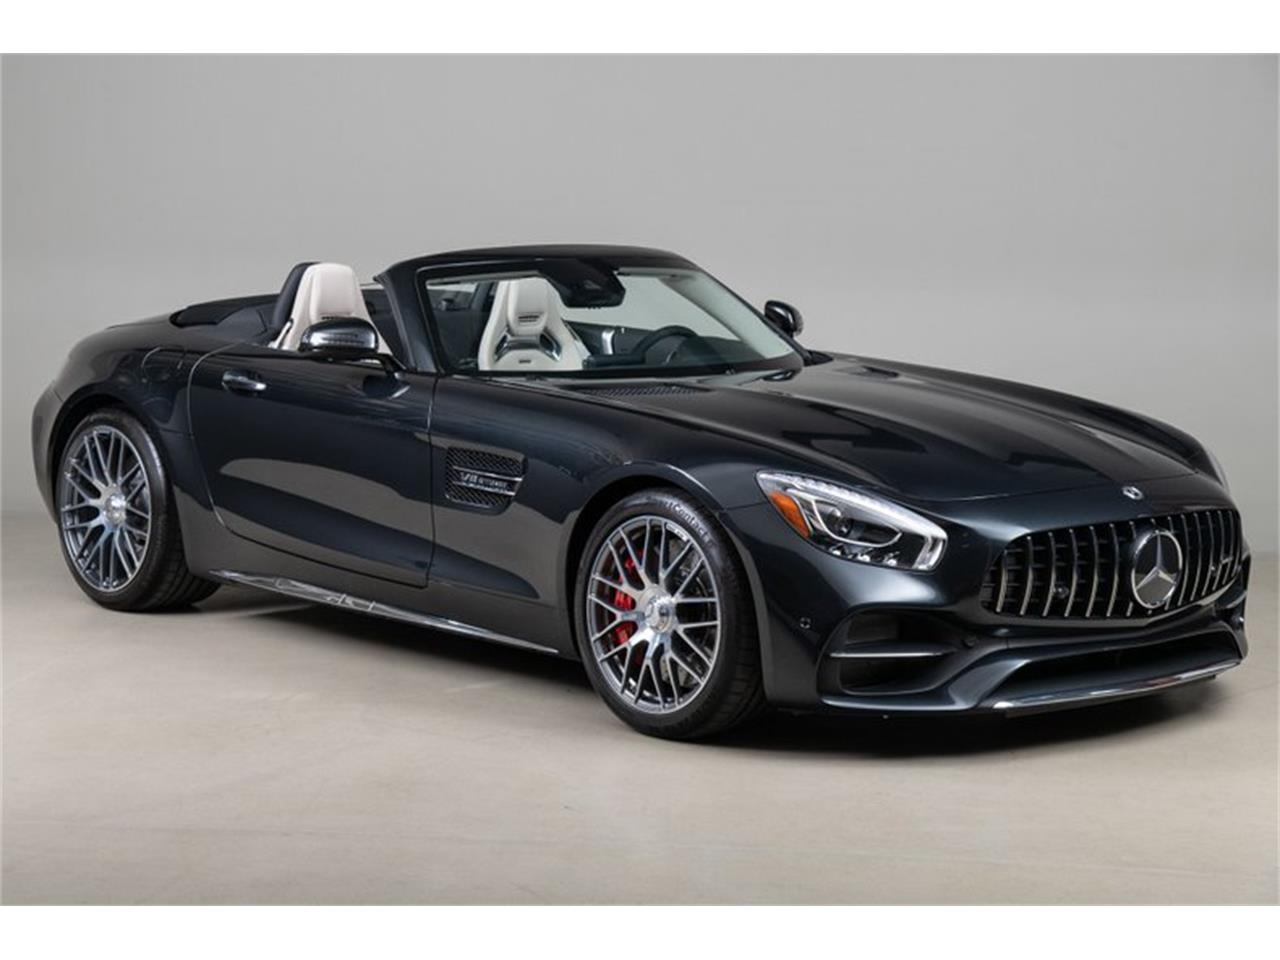 2018 Mercedes-Benz AMG (CC-1294703) for sale in Scotts Valley, California